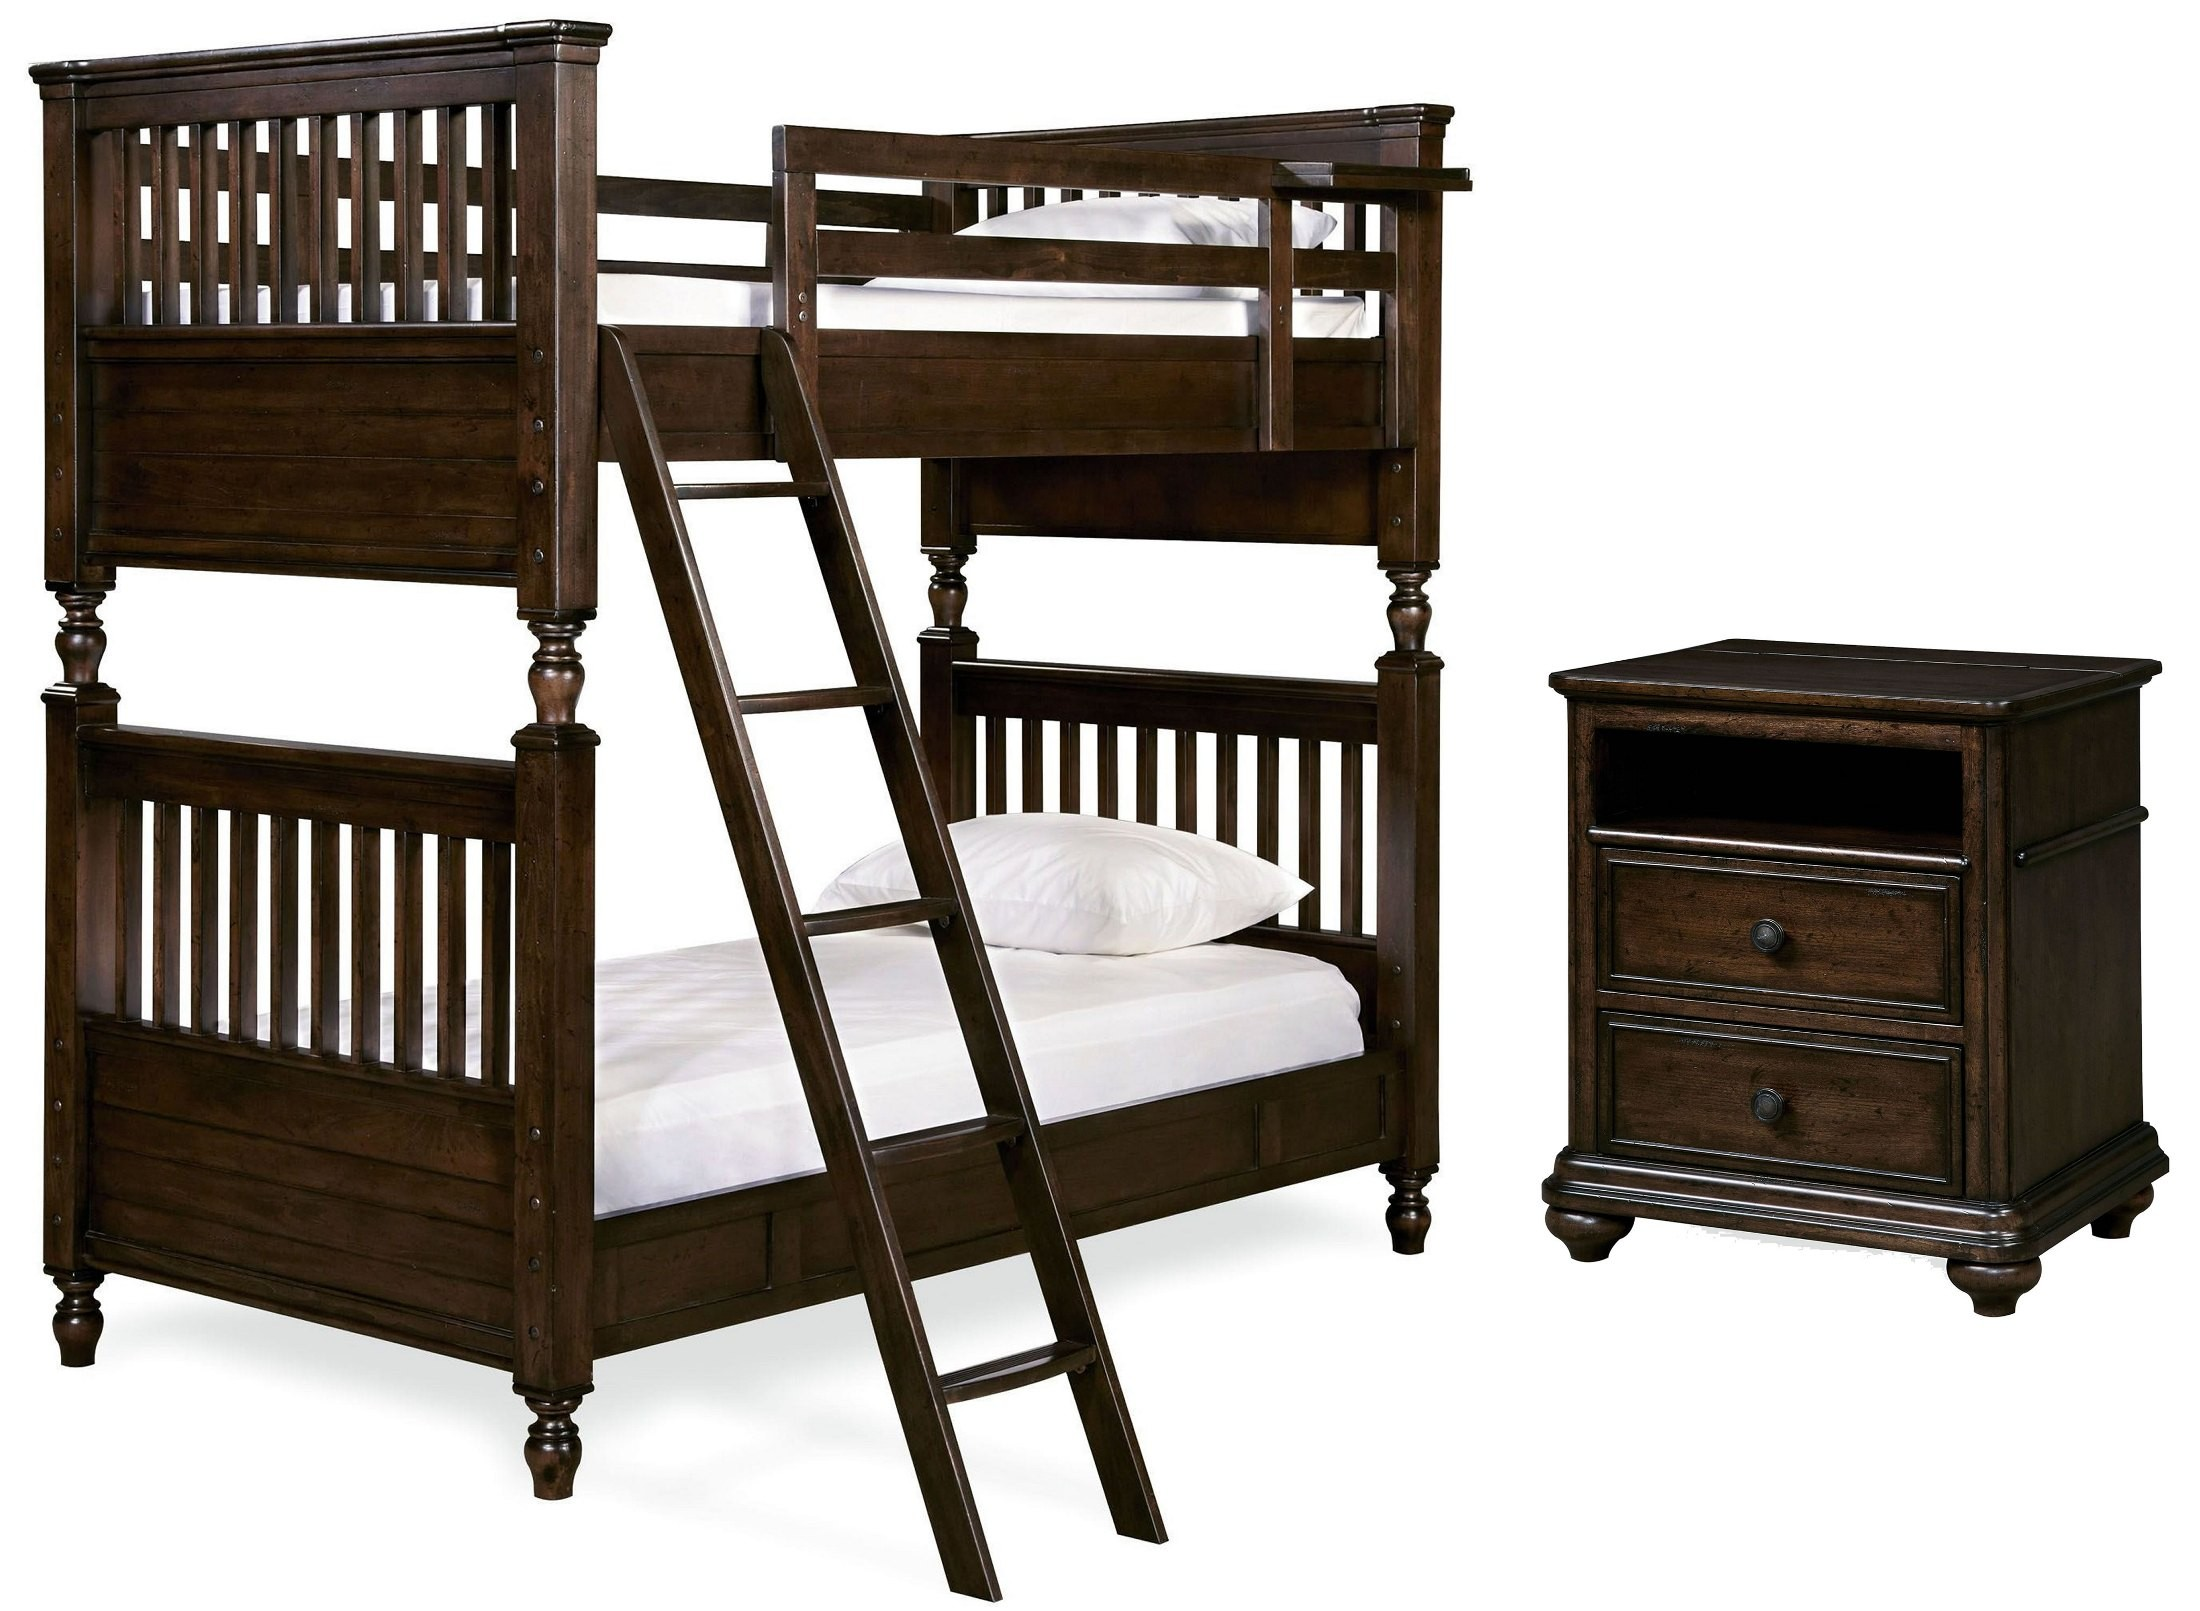 Paula Deen Guys Smartstuff Bunk Bedroom Set From Smartstuff Coleman Furniture